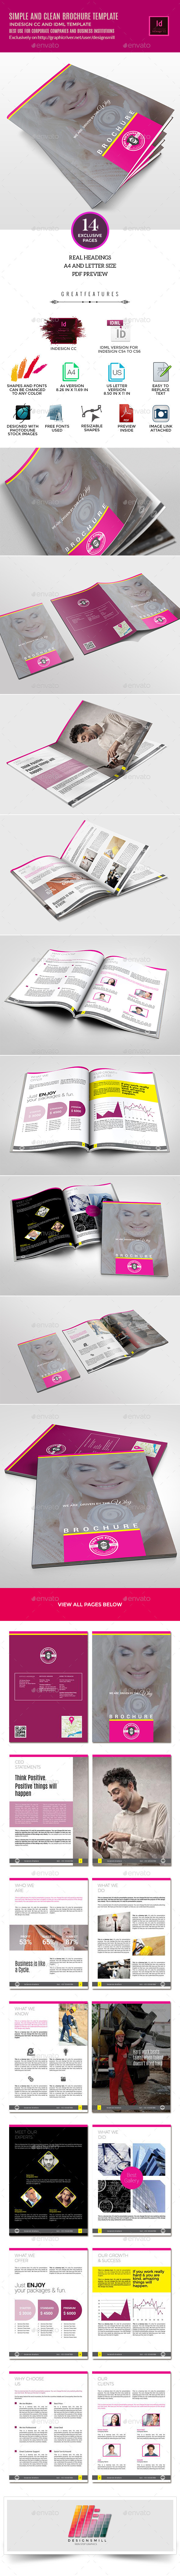 GraphicRiver Big Stone Multipurpose Clean Brochure Template 10288332